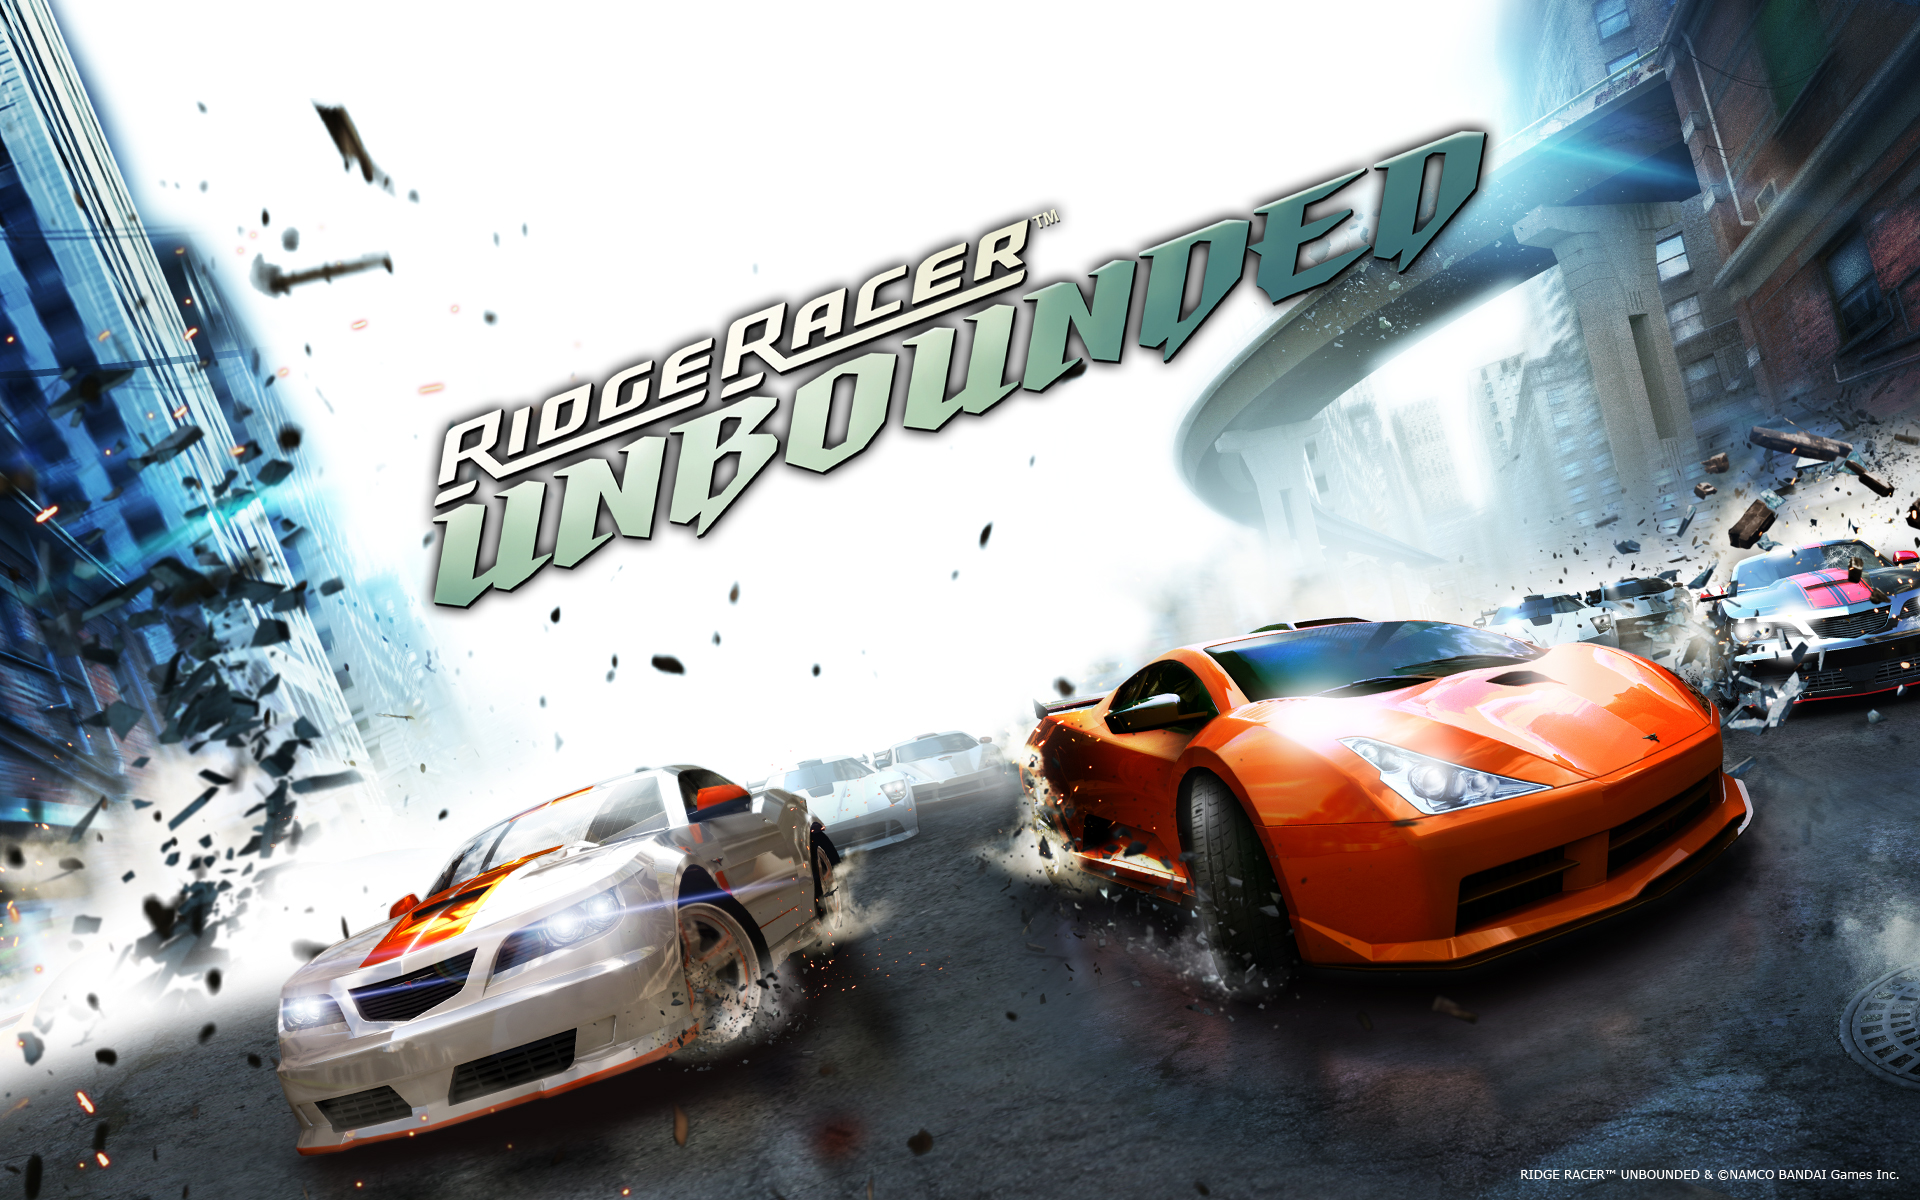 Ridge Racer Unbounded Game 393.84 Kb